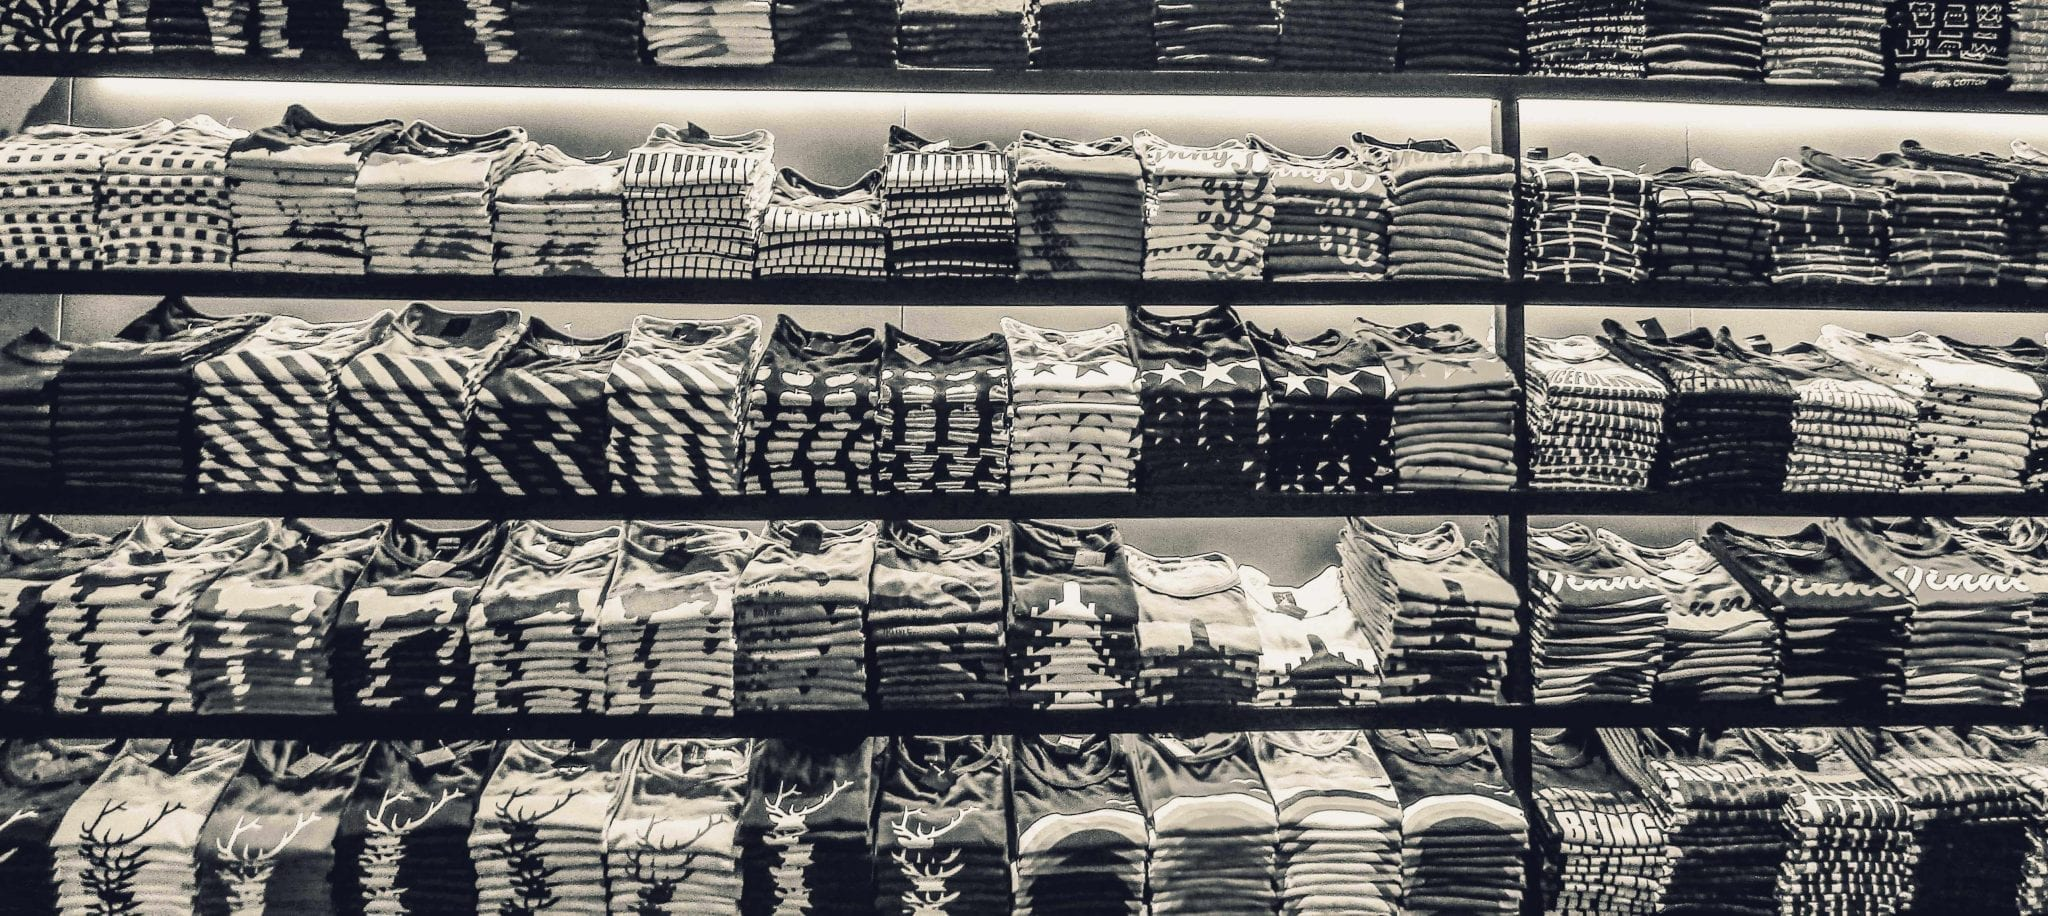 stacks of neatly folded shirts in black and white